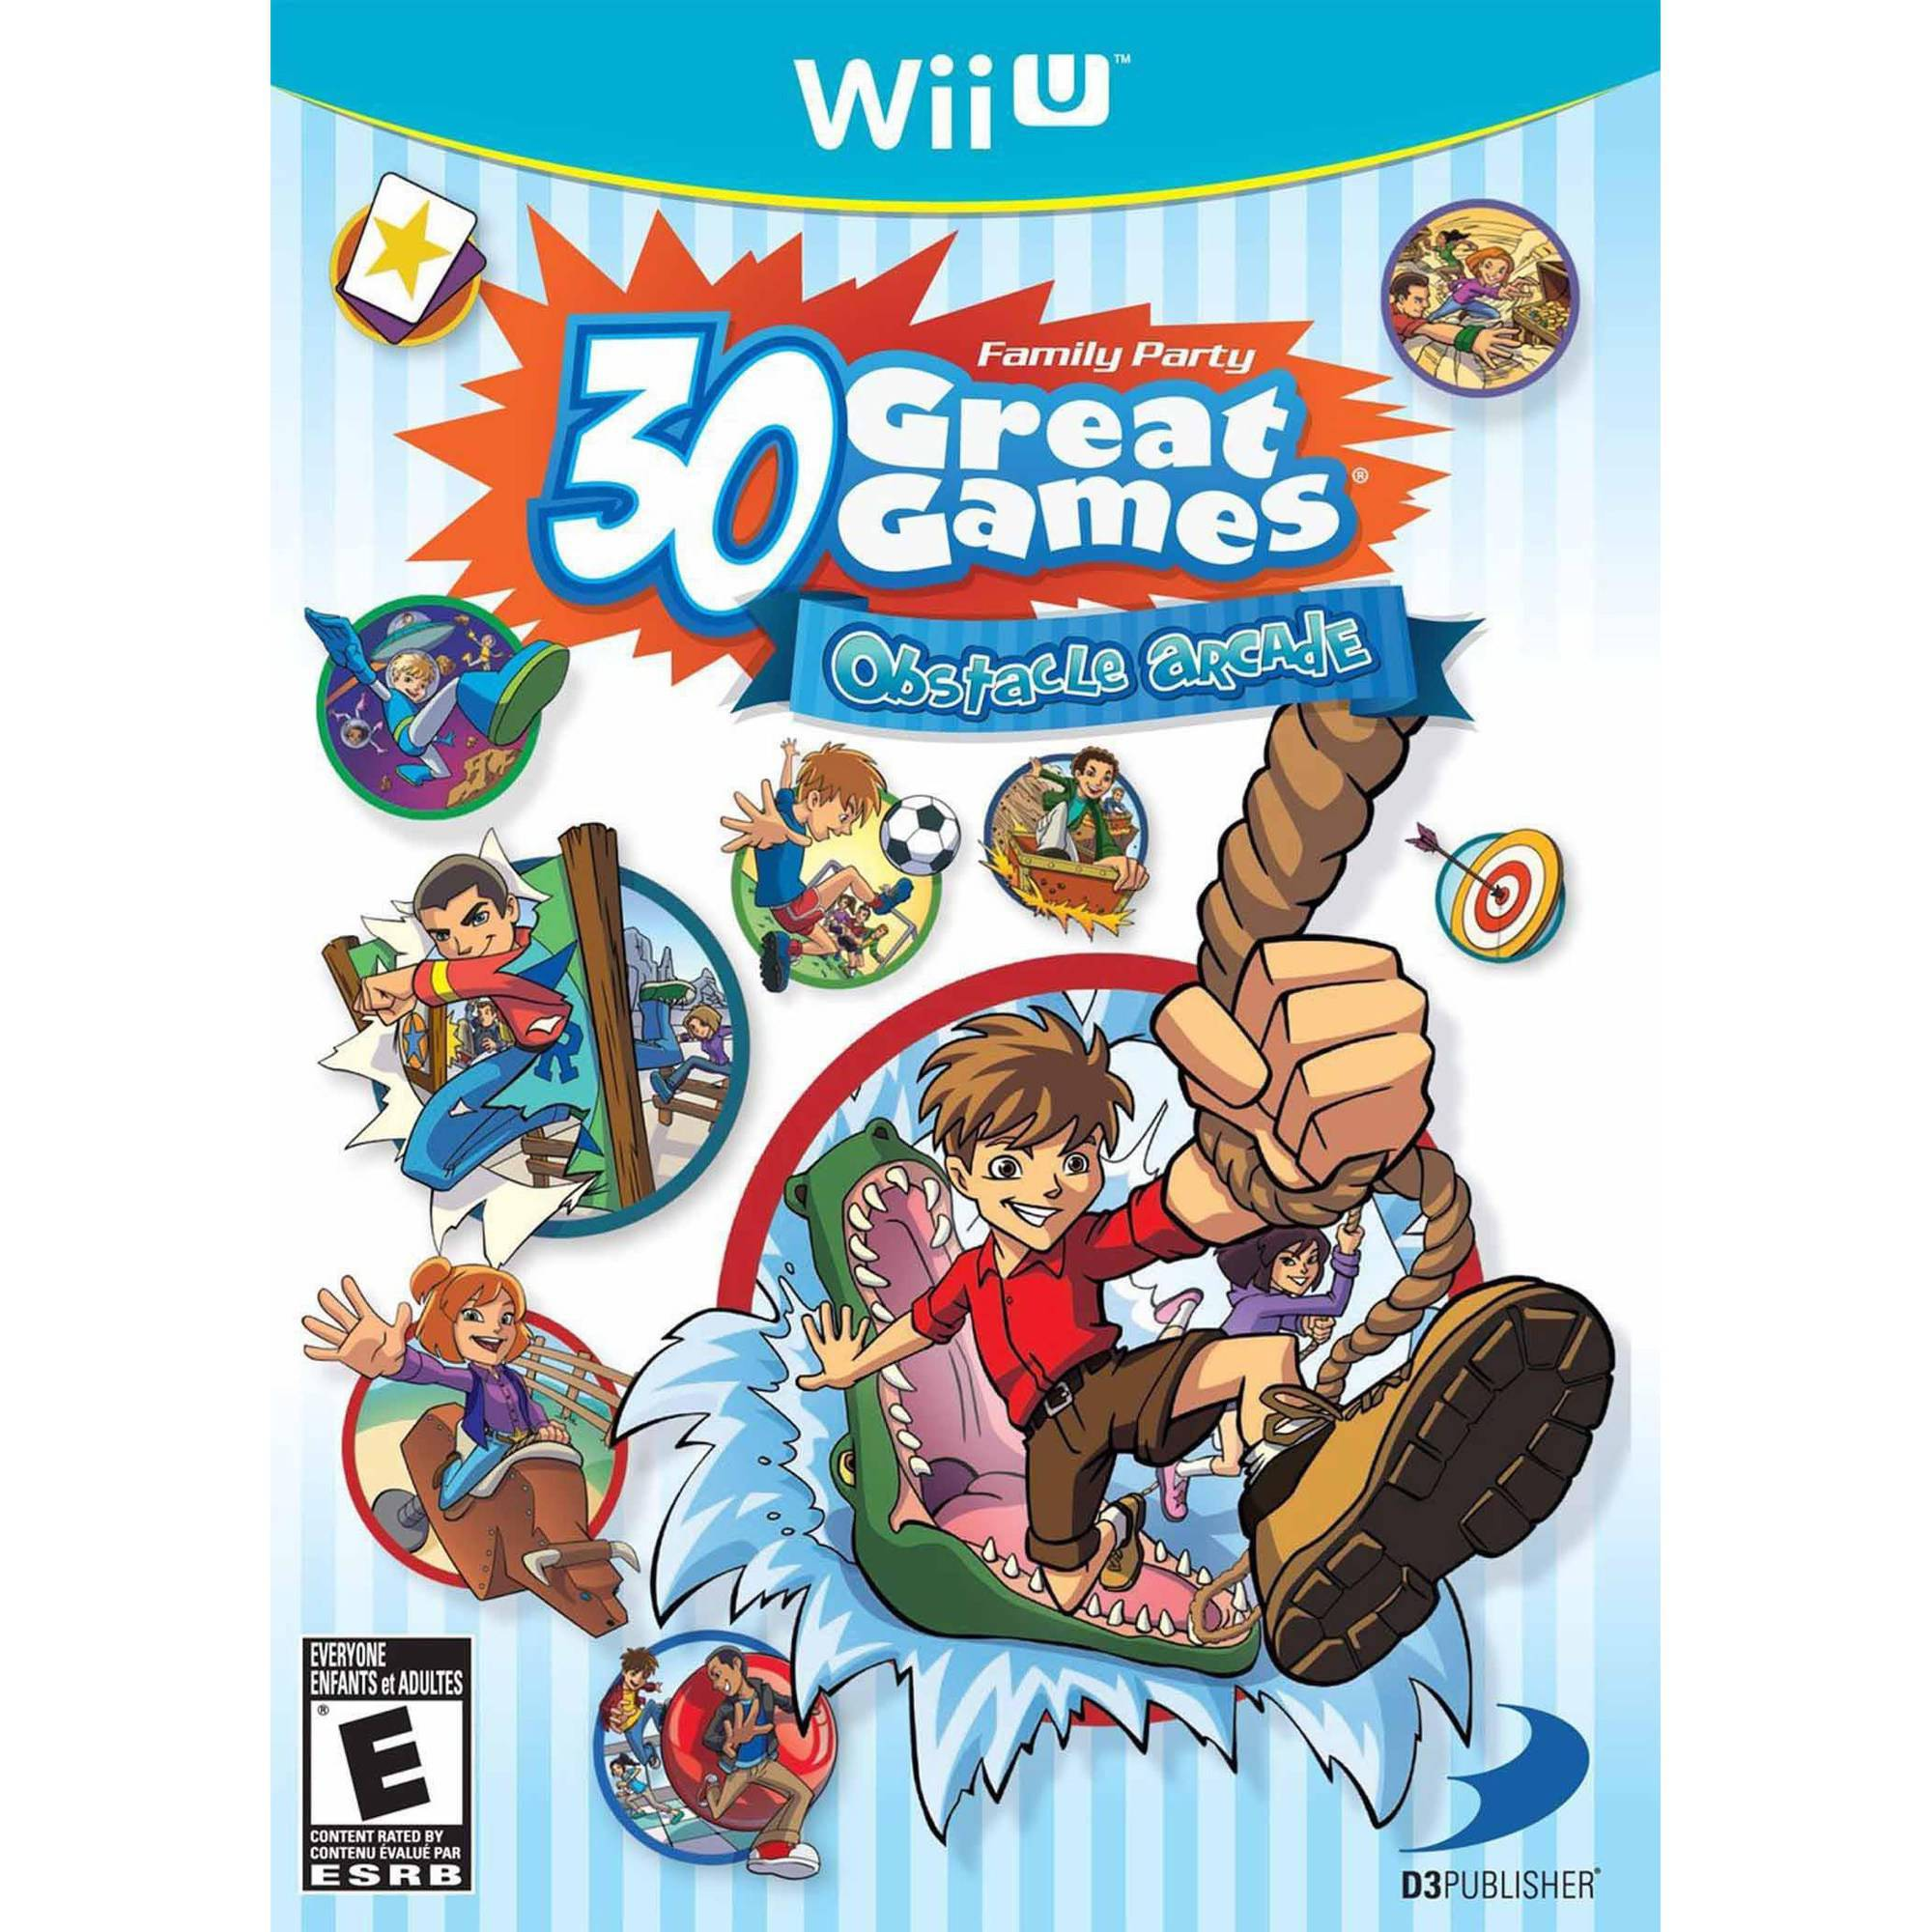 Family Party 30 Great Games Obstacle  Arcade (Wii U)